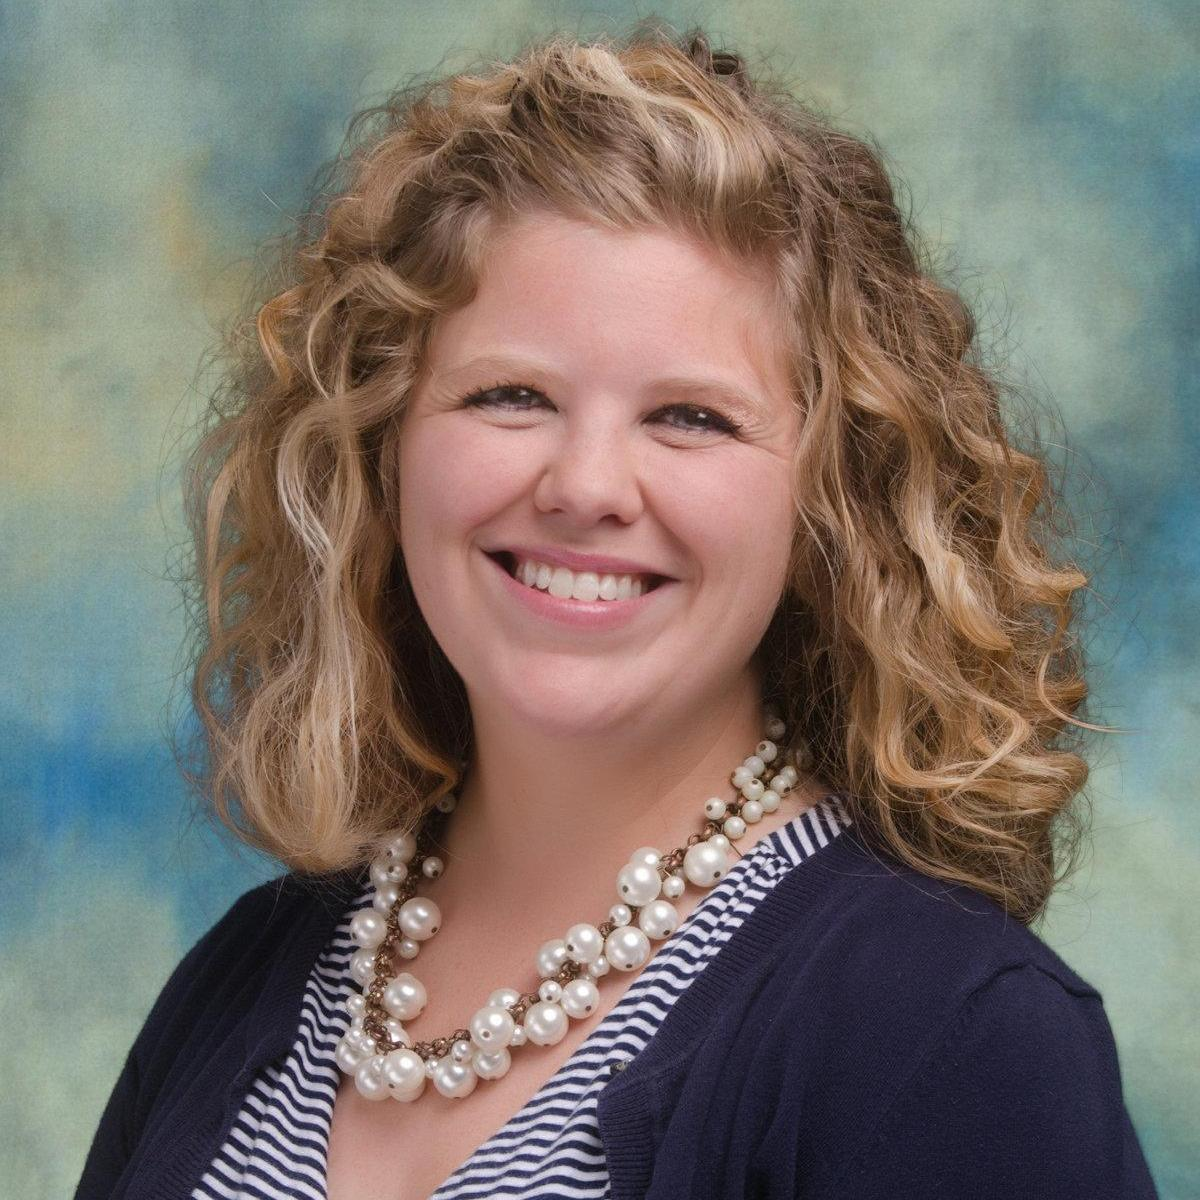 Stephanie McCabe, M.Ed.'s Profile Photo